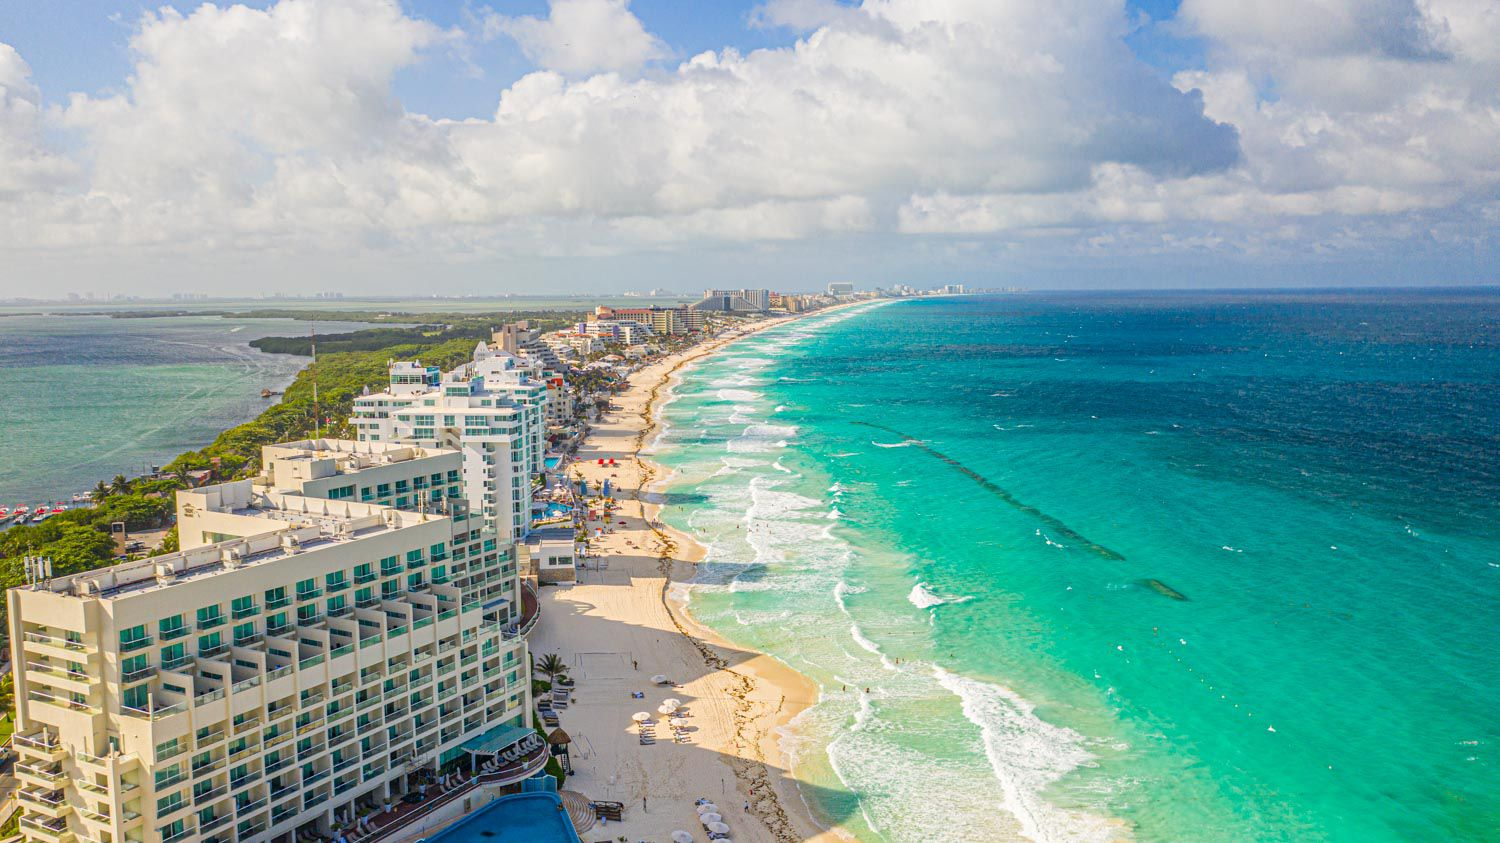 Cancun - Warm Places To Visit in February 2020